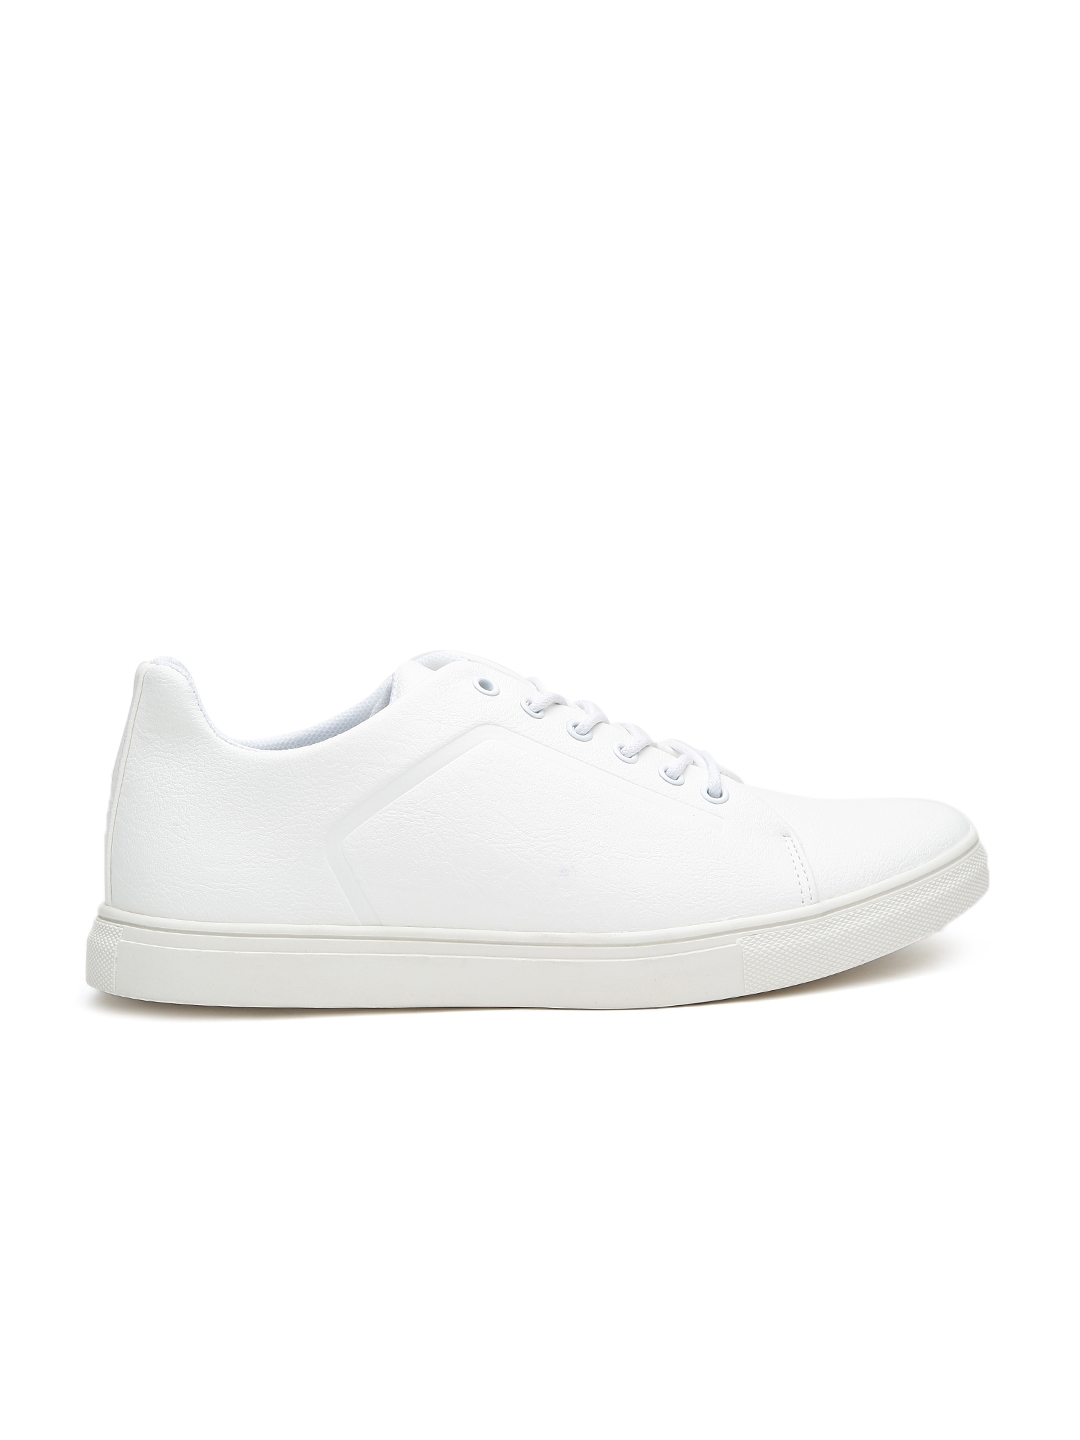 Ether Men White Sneakers - Casual Shoes